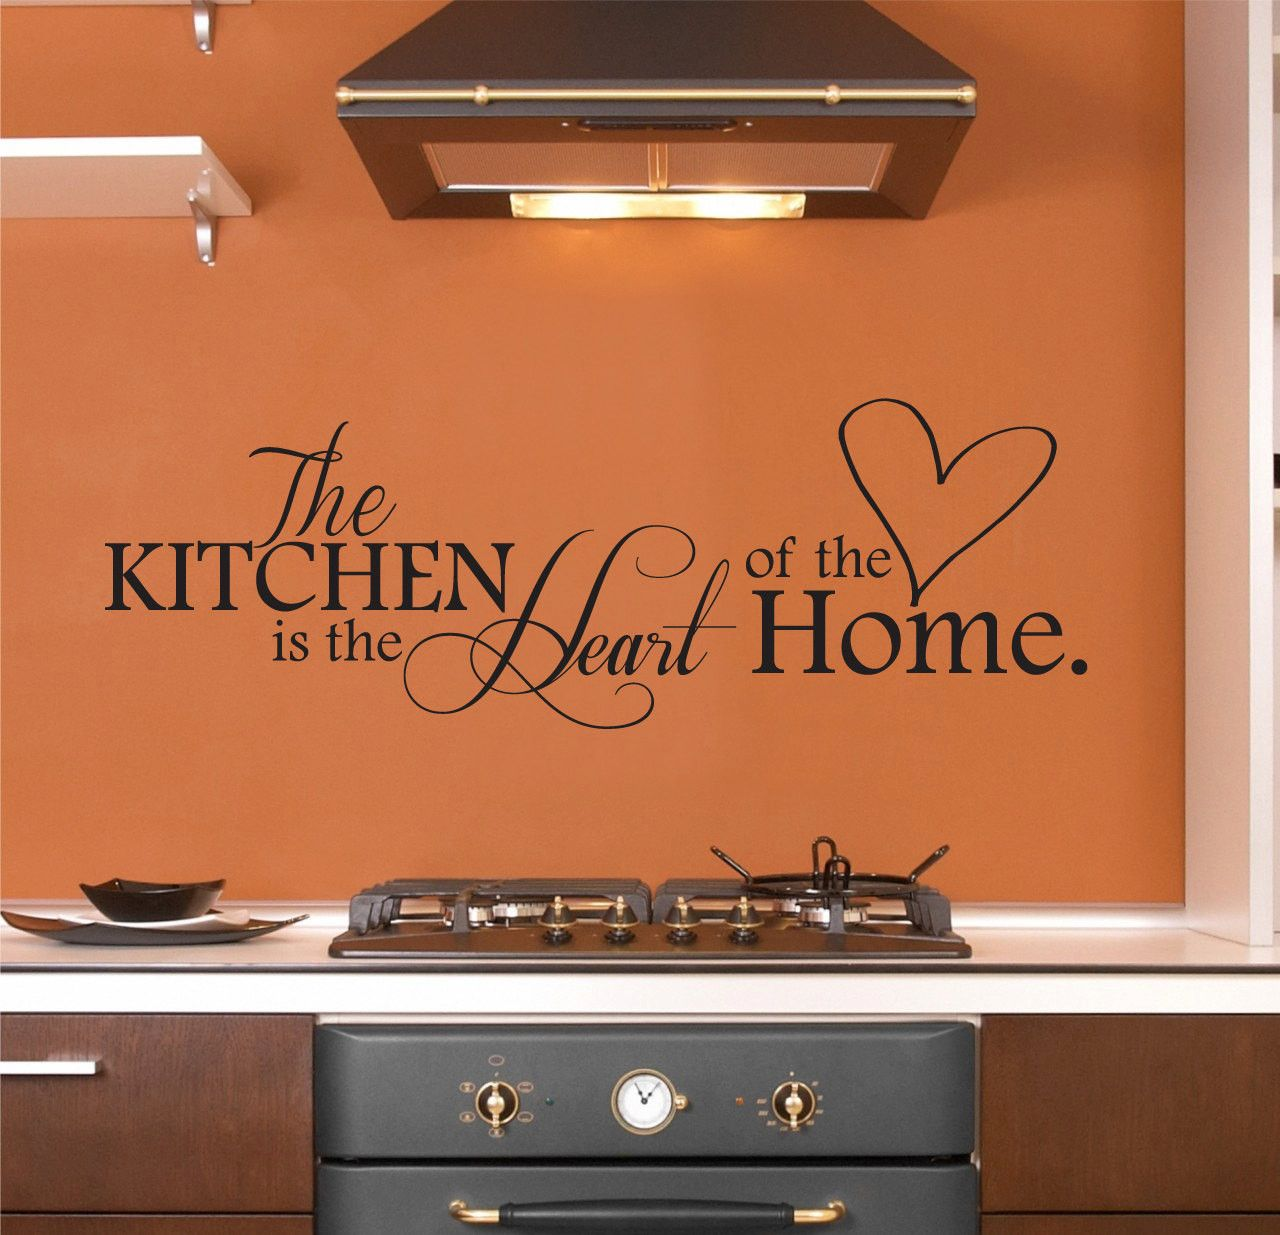 For The Kitchen The Kitchen Is The Heart Of The Home Wall Decal Kitchen Wall